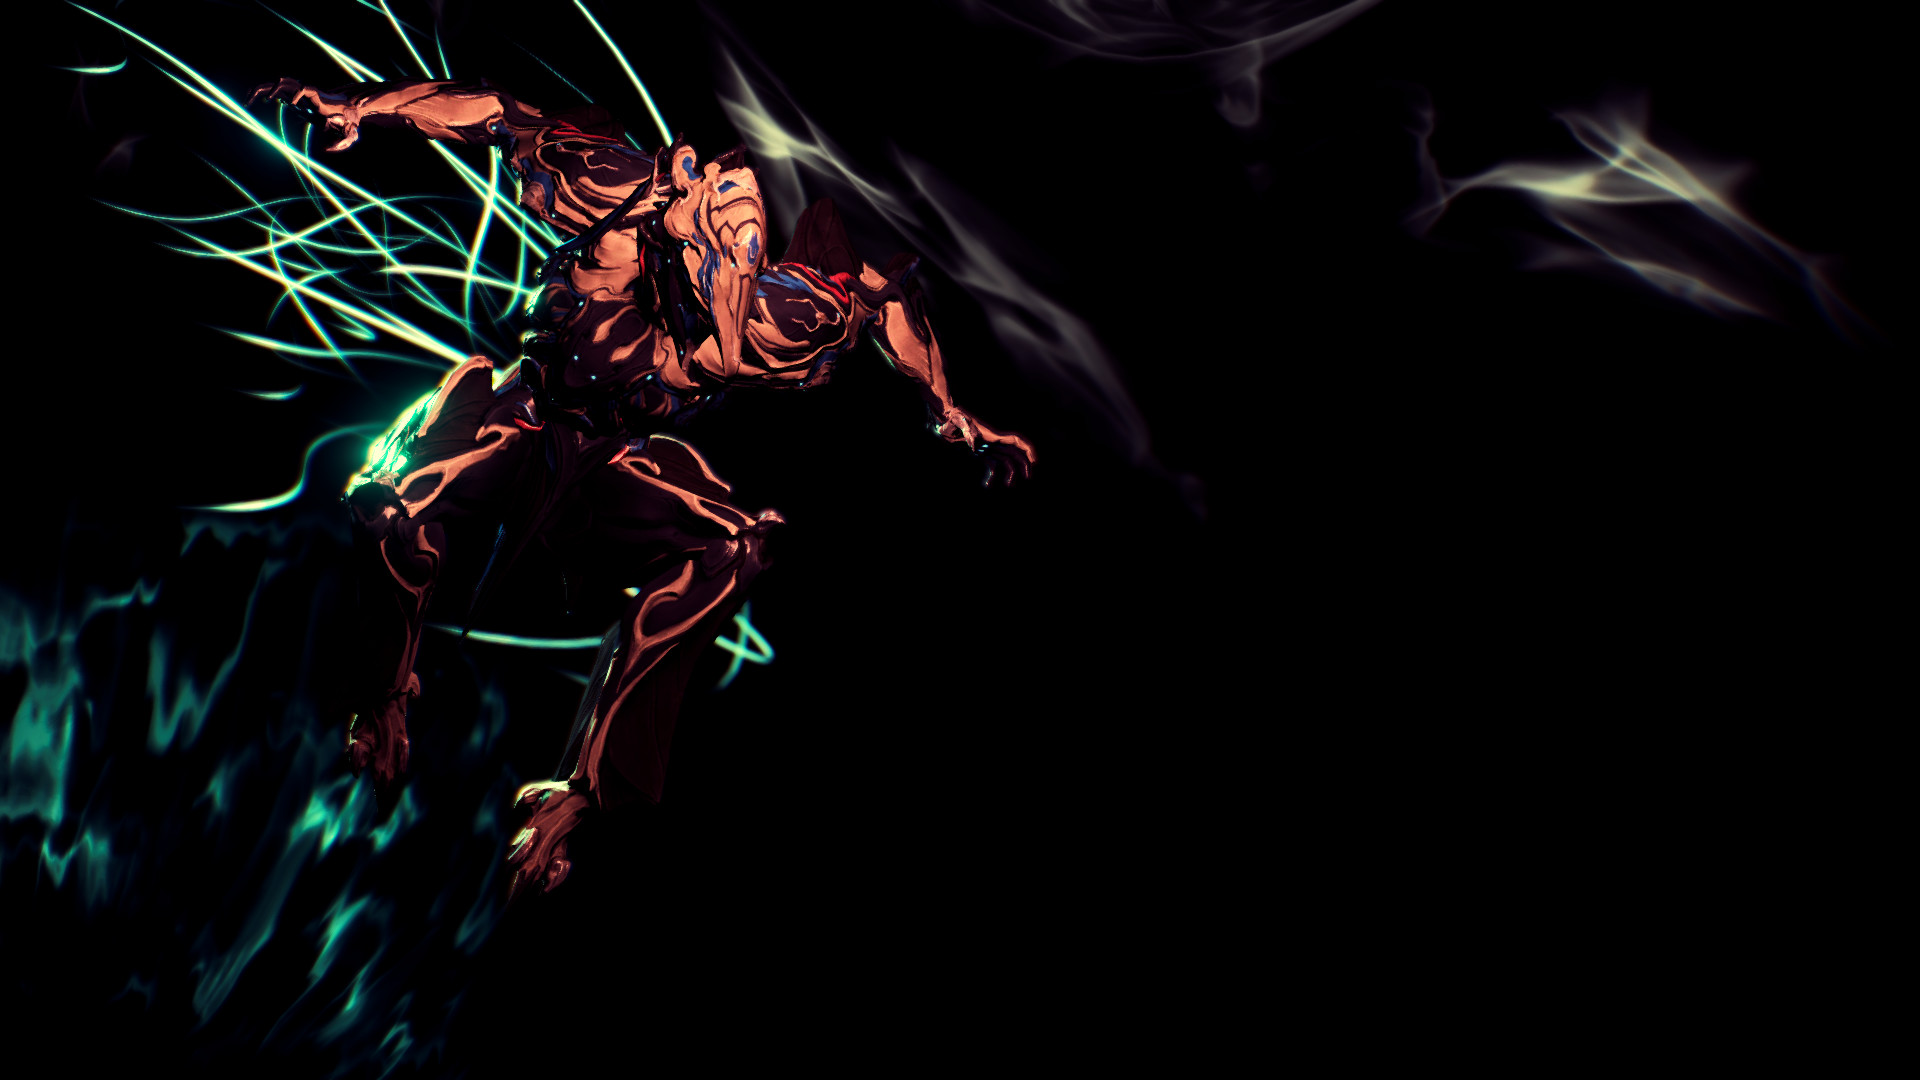 Res: 1920x1080, Awesome Warframe Backgrounds › Warframe Wallpapers